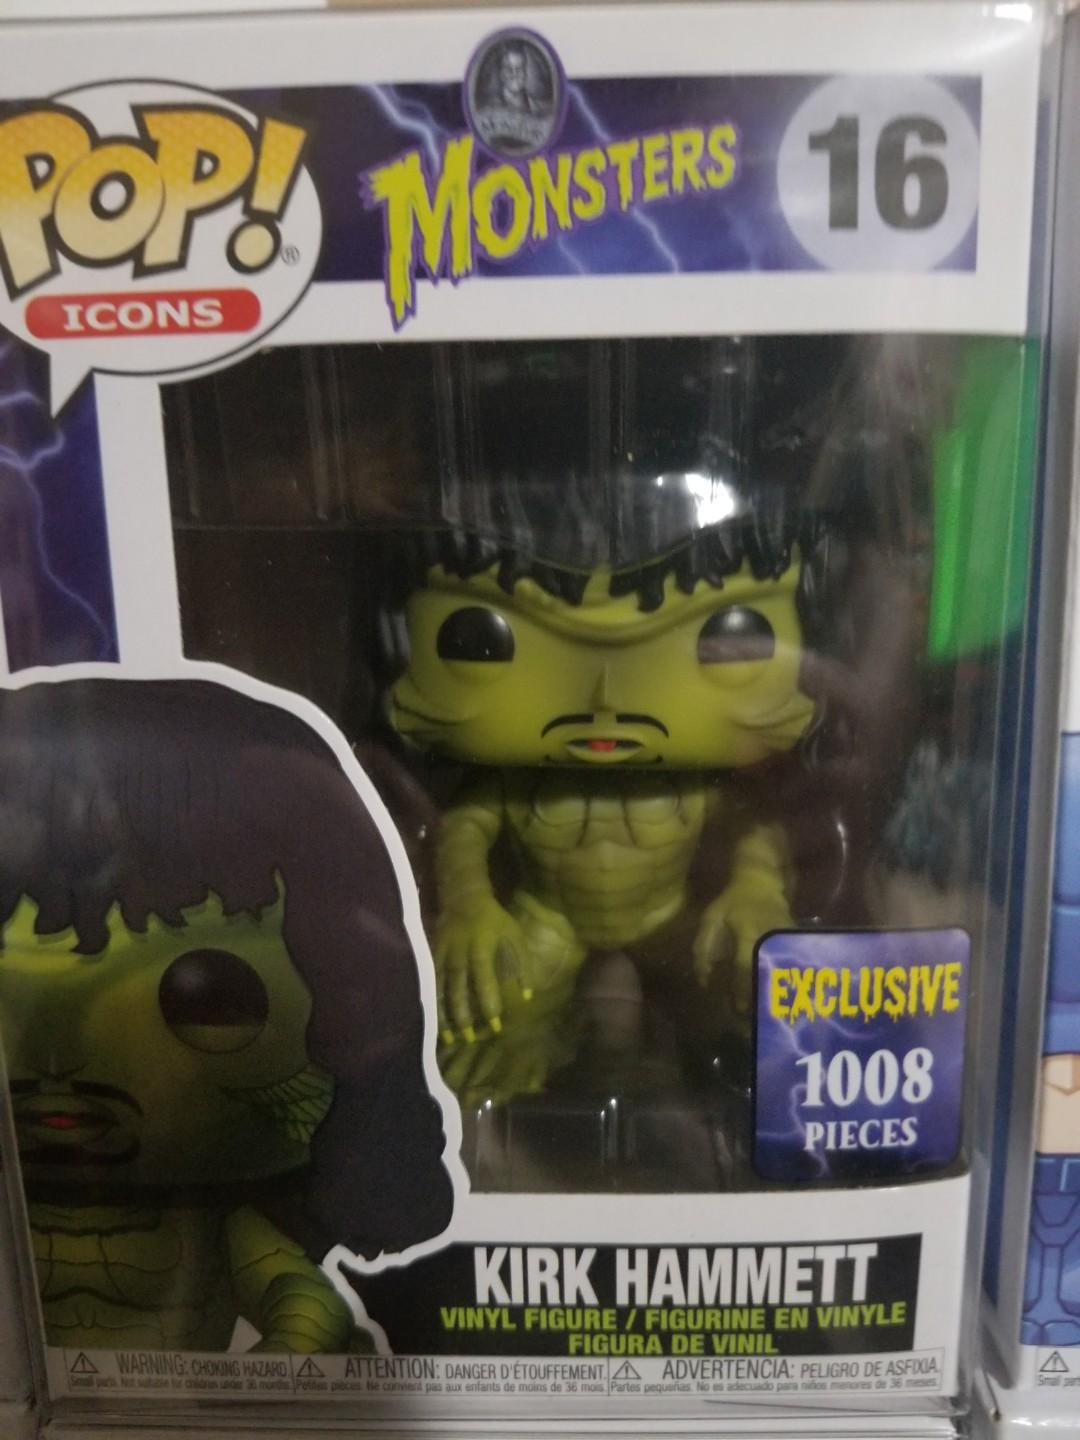 Kirk Hammett ROM exclusive pops! Only 1008 pieces made!